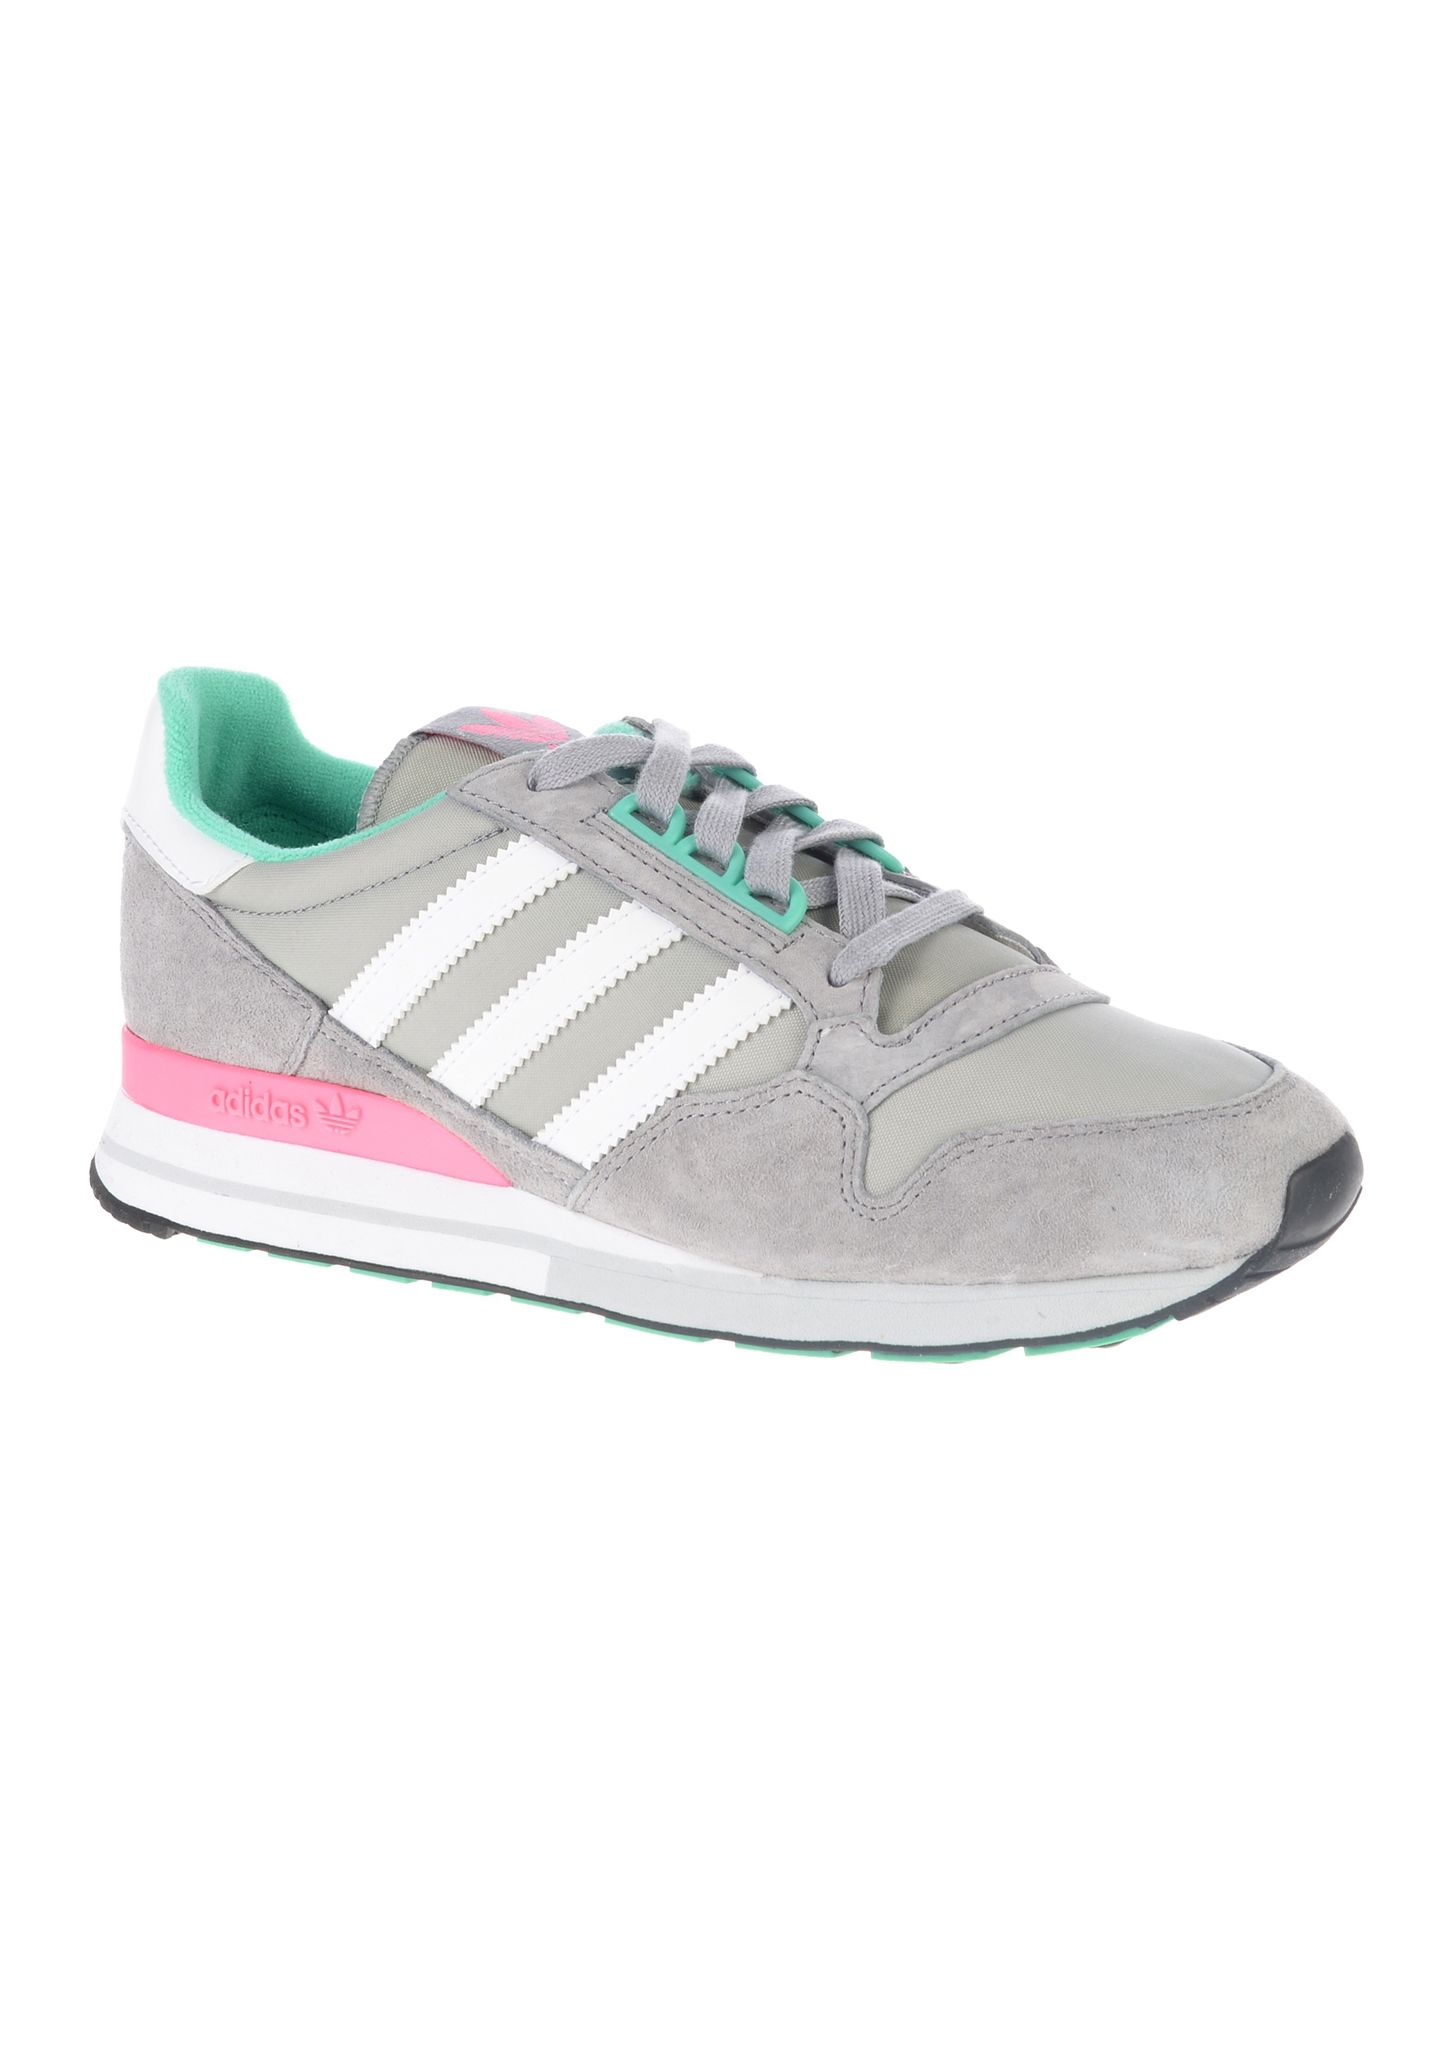 buy cheap online adidas zx 500 womens green fine shoes. Black Bedroom Furniture Sets. Home Design Ideas